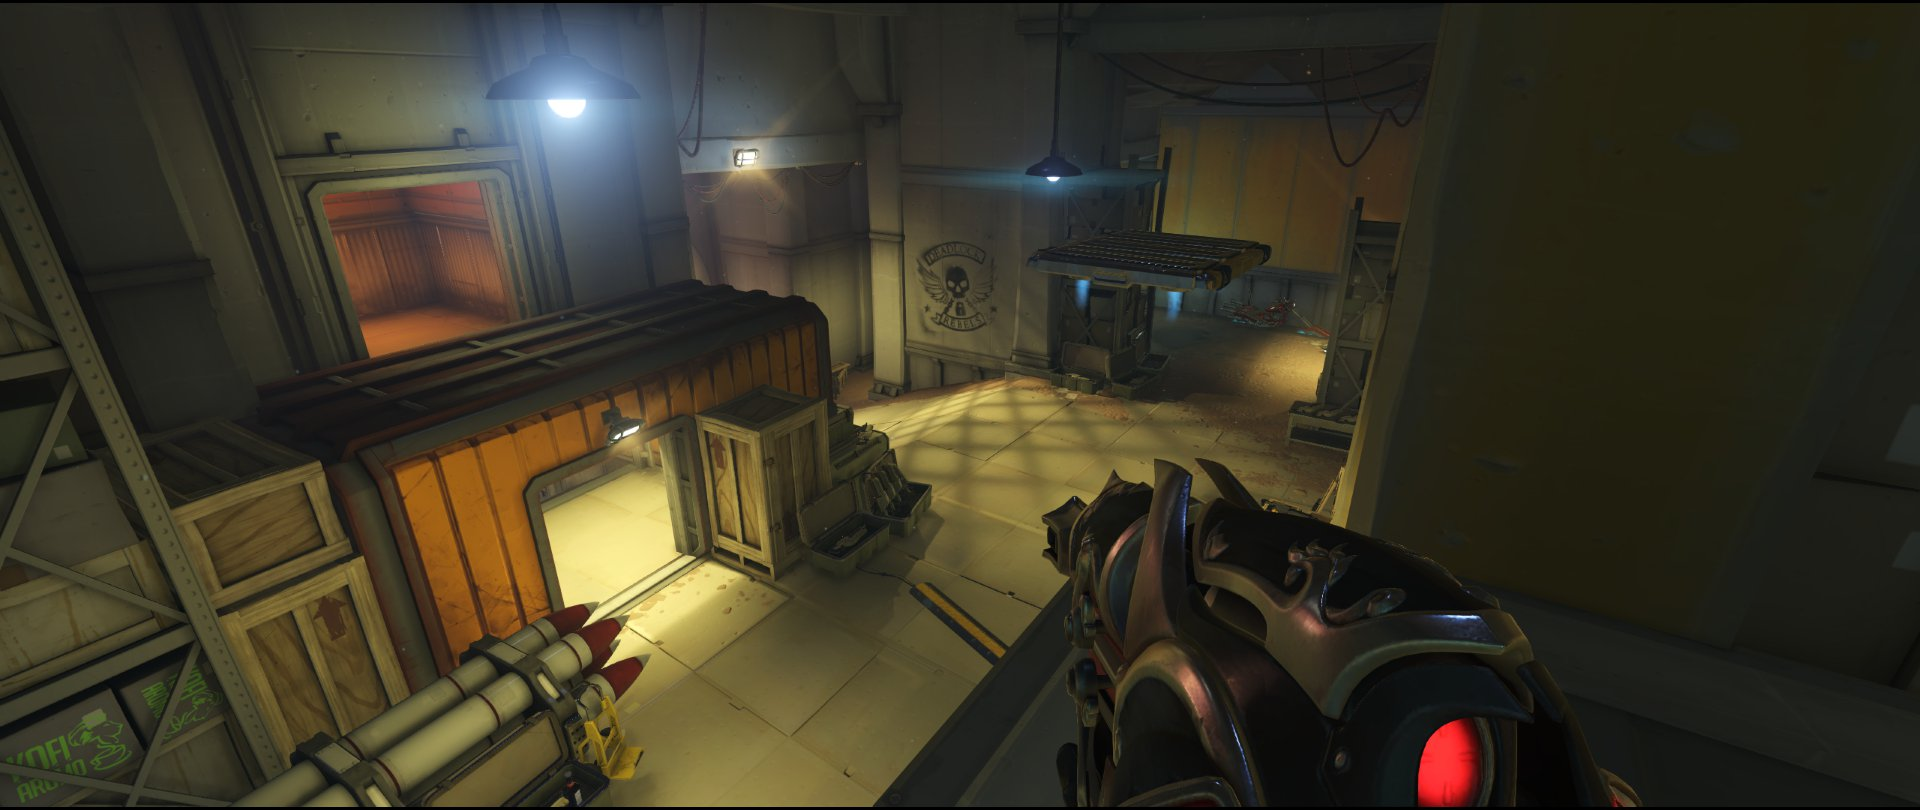 High ground office two defense sniping spot Widowmaker Route 66.jpg